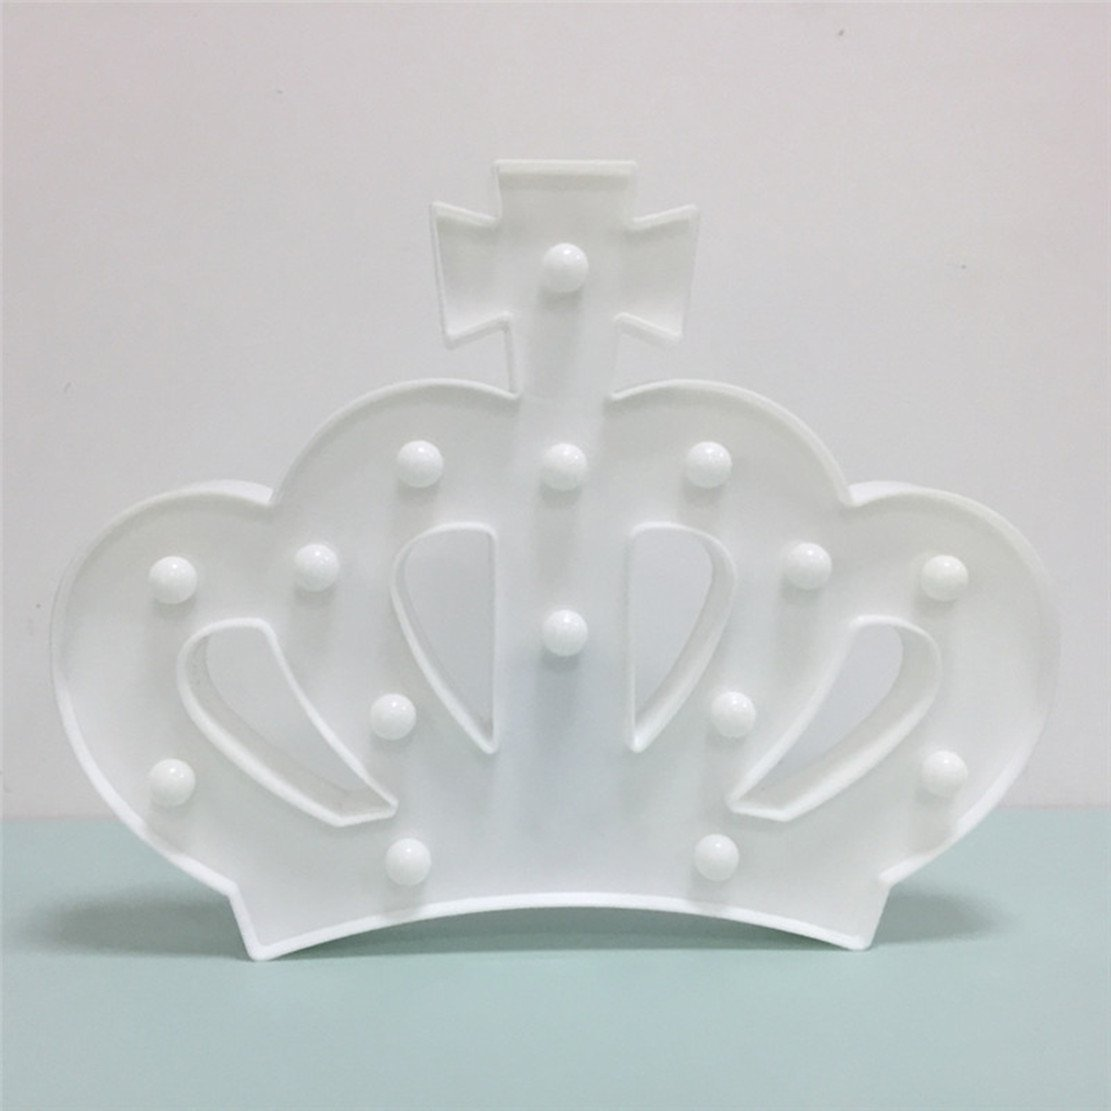 QiaoFei 3D Crown Marquee Sign Light,LED Queen Princess Kings Shaped Sign-Lighted,Wall Decor for Chistmas,Birthday party,Kids Room, Living Room, Wedding Party Decor(White) by QiaoFei (Image #5)